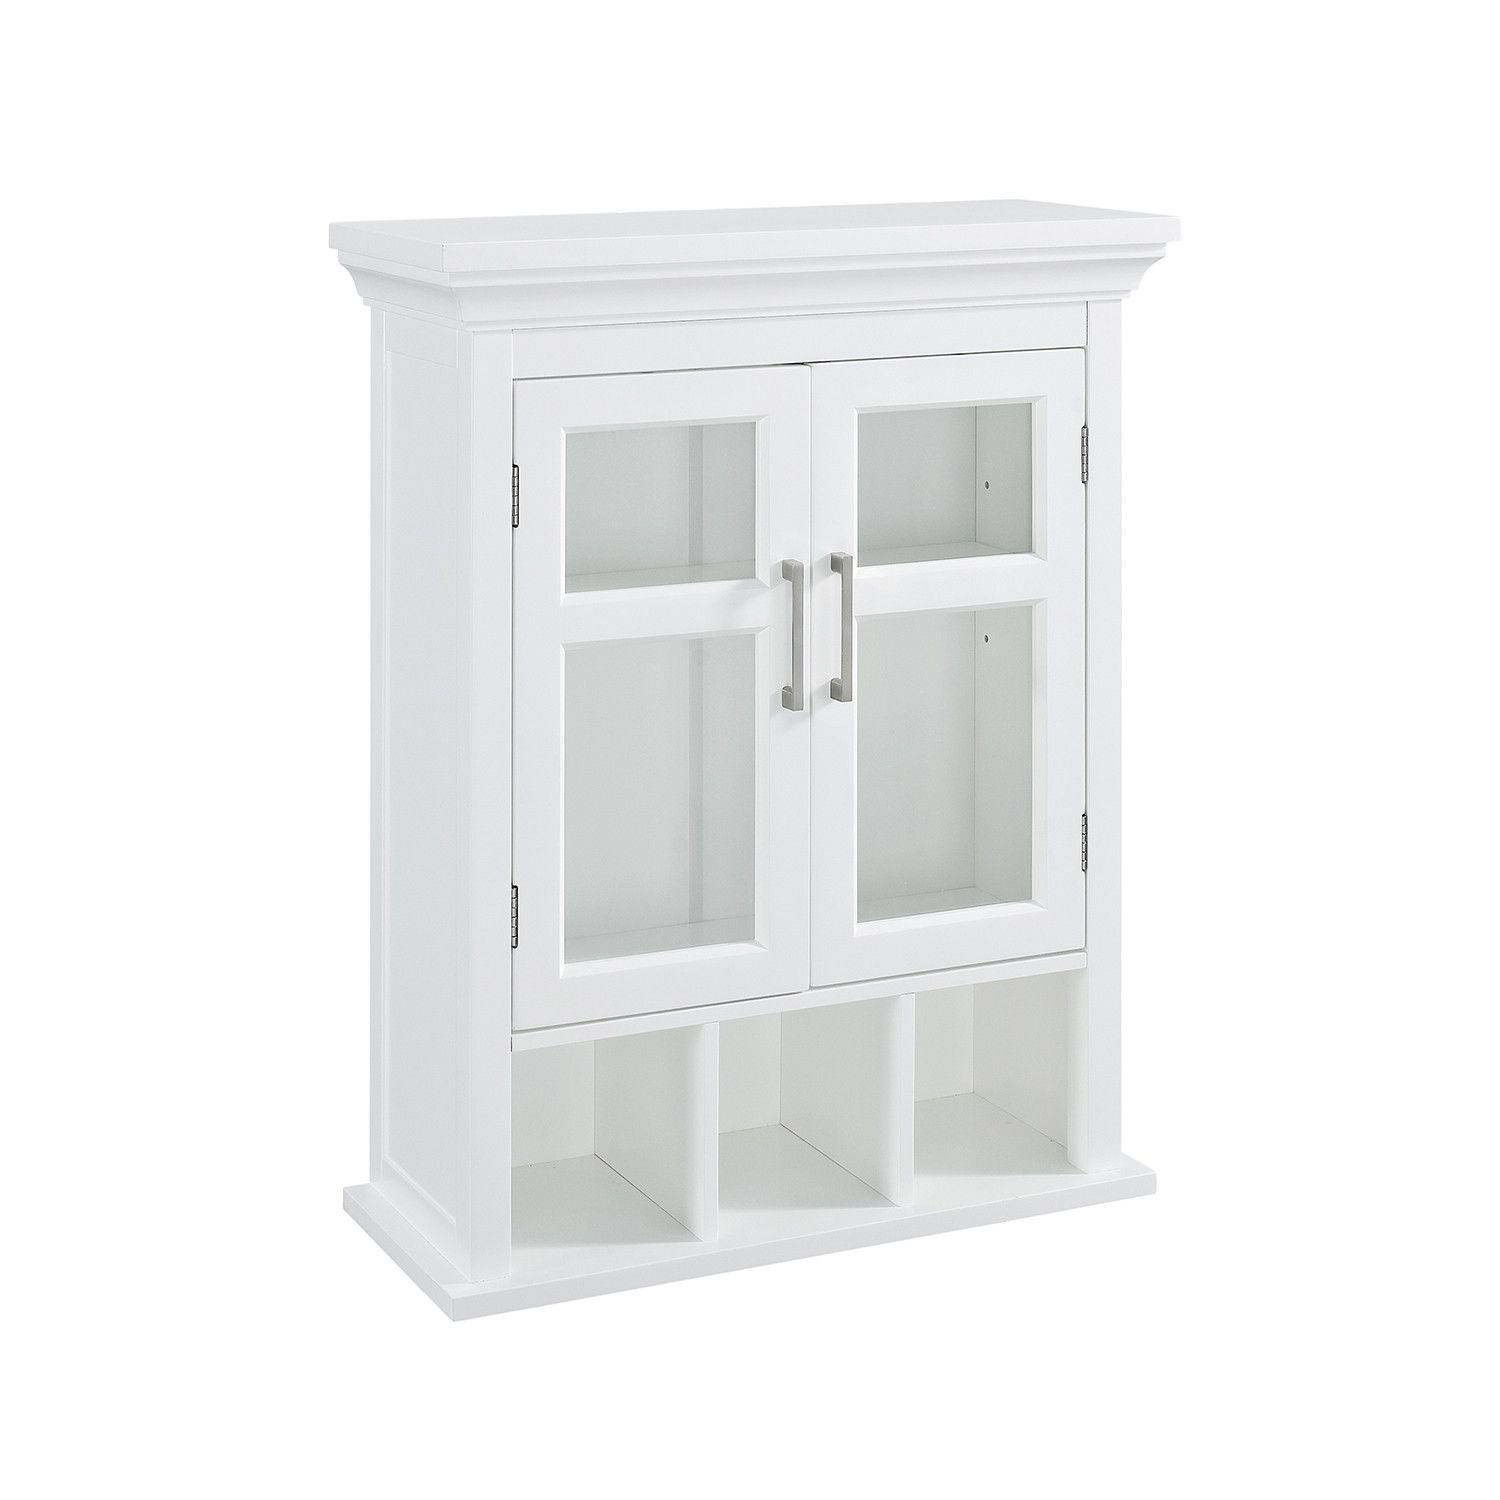 Avington Two Door Wall Cabinet with Cubbies | Products | Pinterest ...